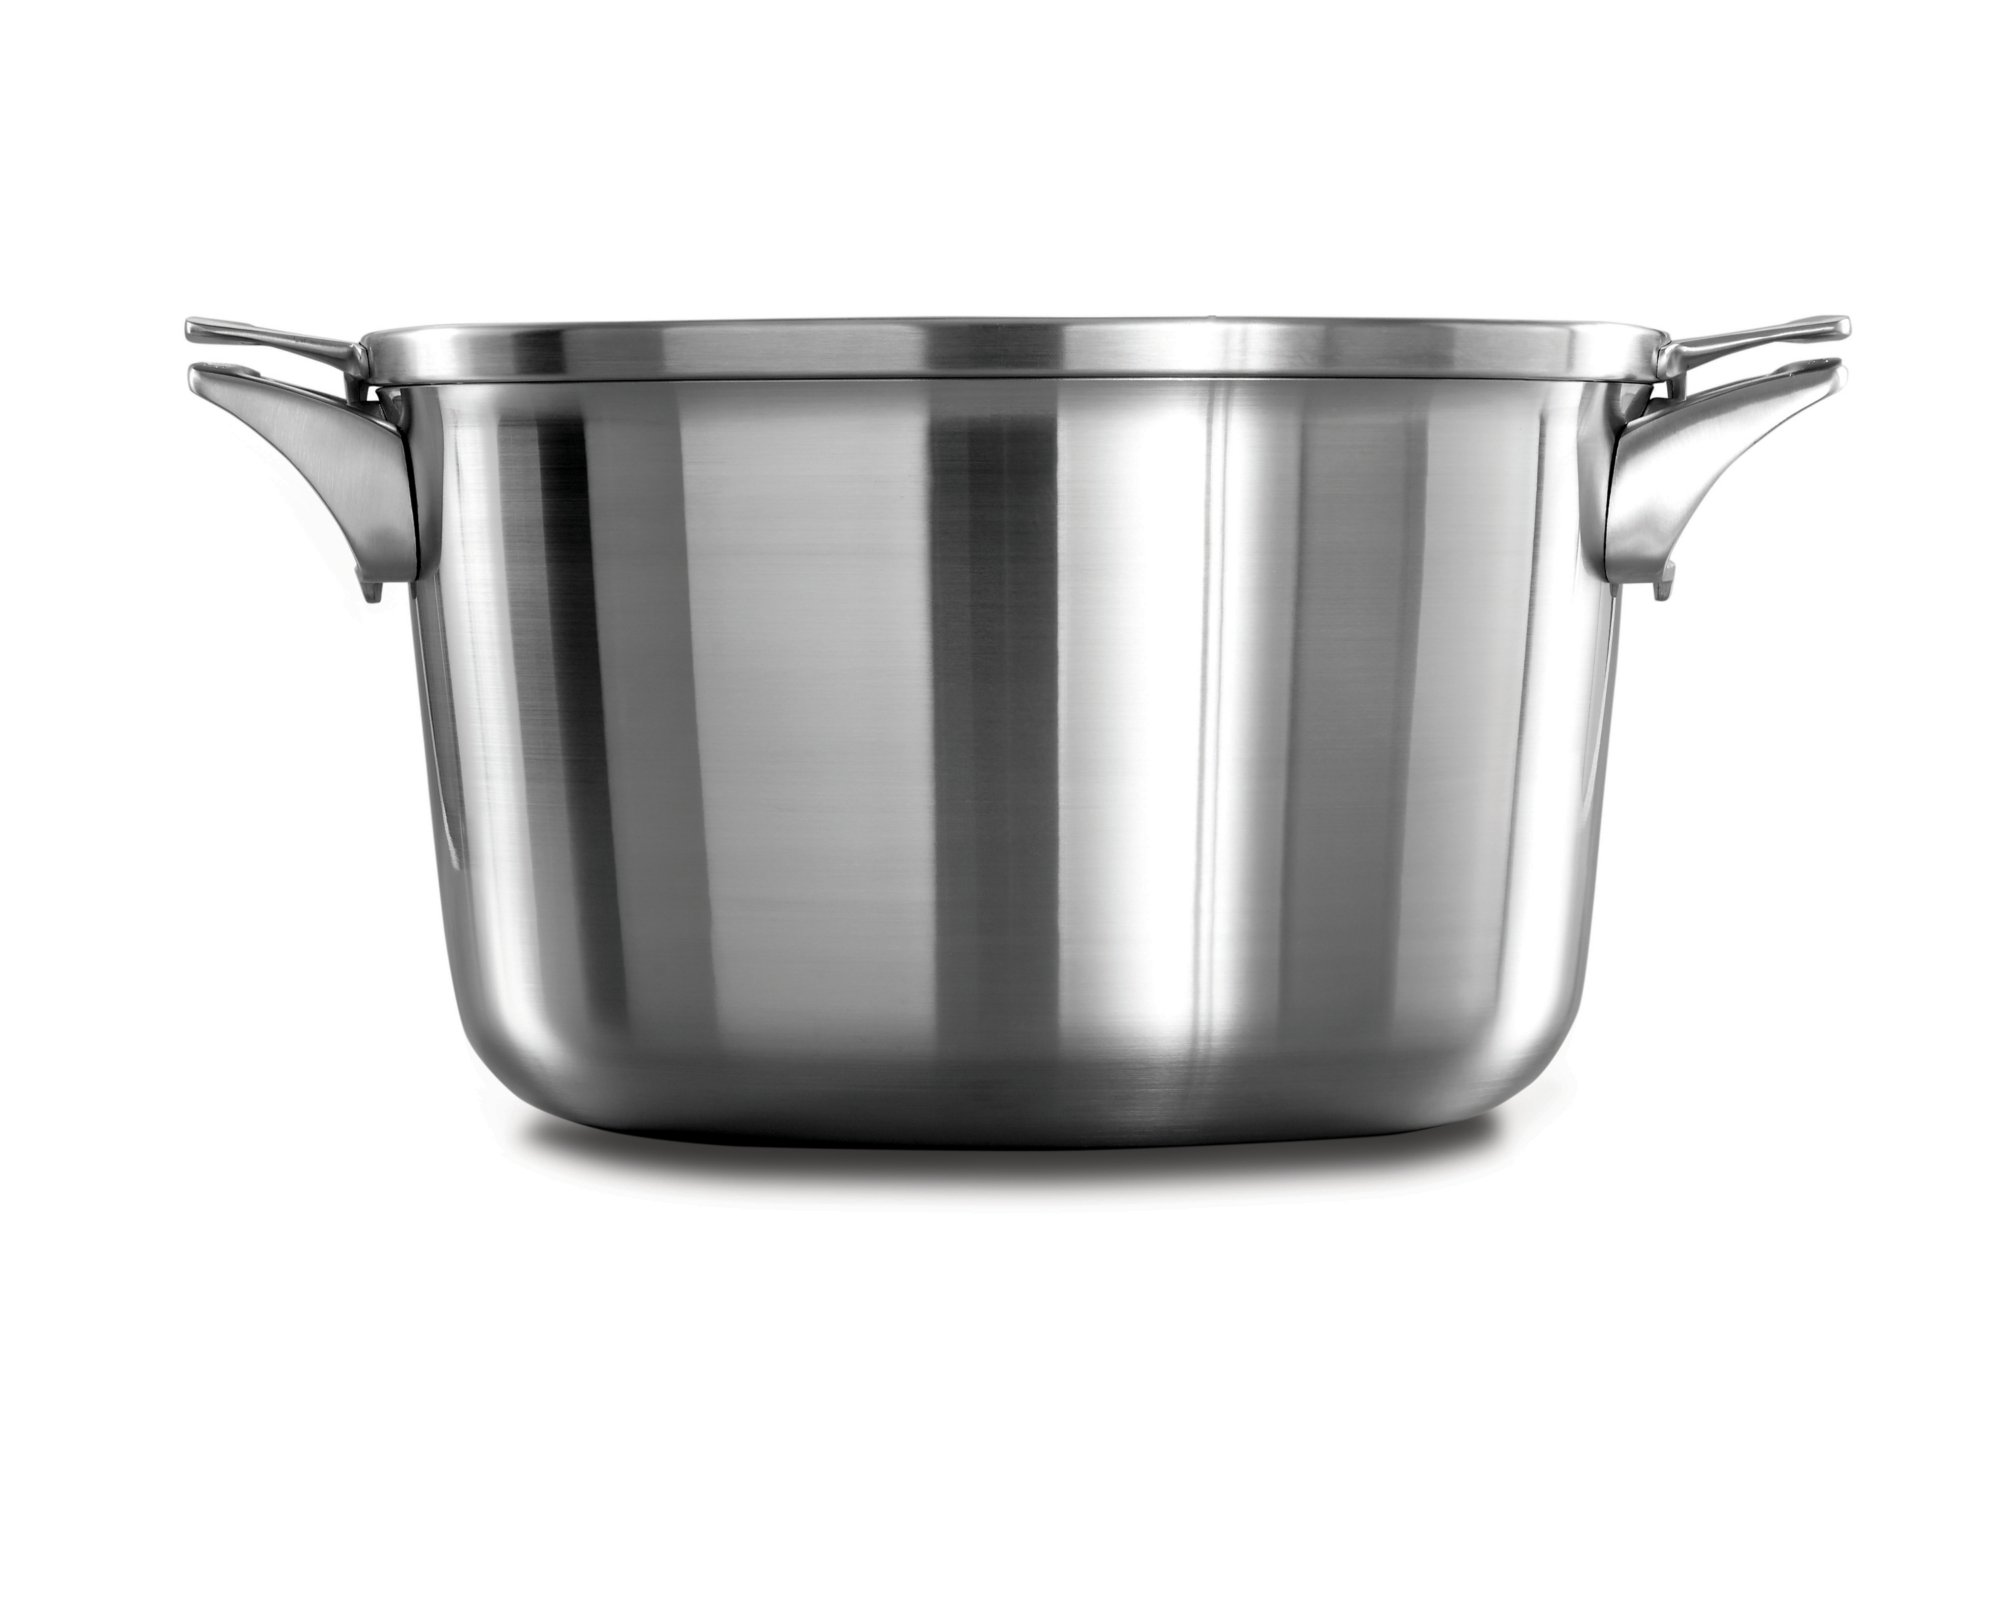 Calphalon Premier™ Space Saving Stainless Steel 12 qt. Stock Pot with Cover